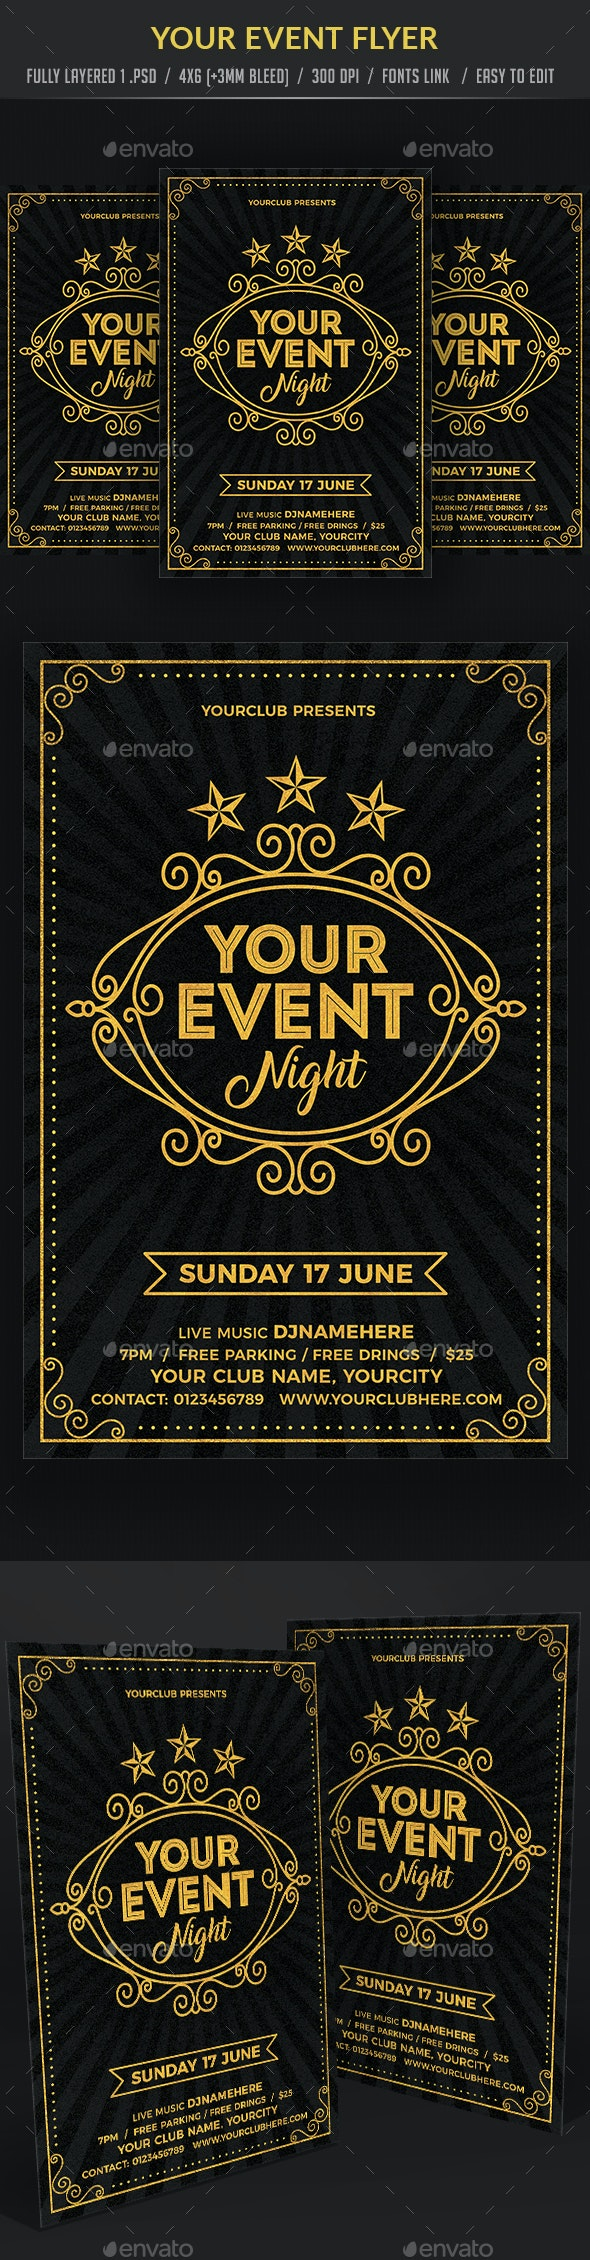 Your Event Flyer - Events Flyers